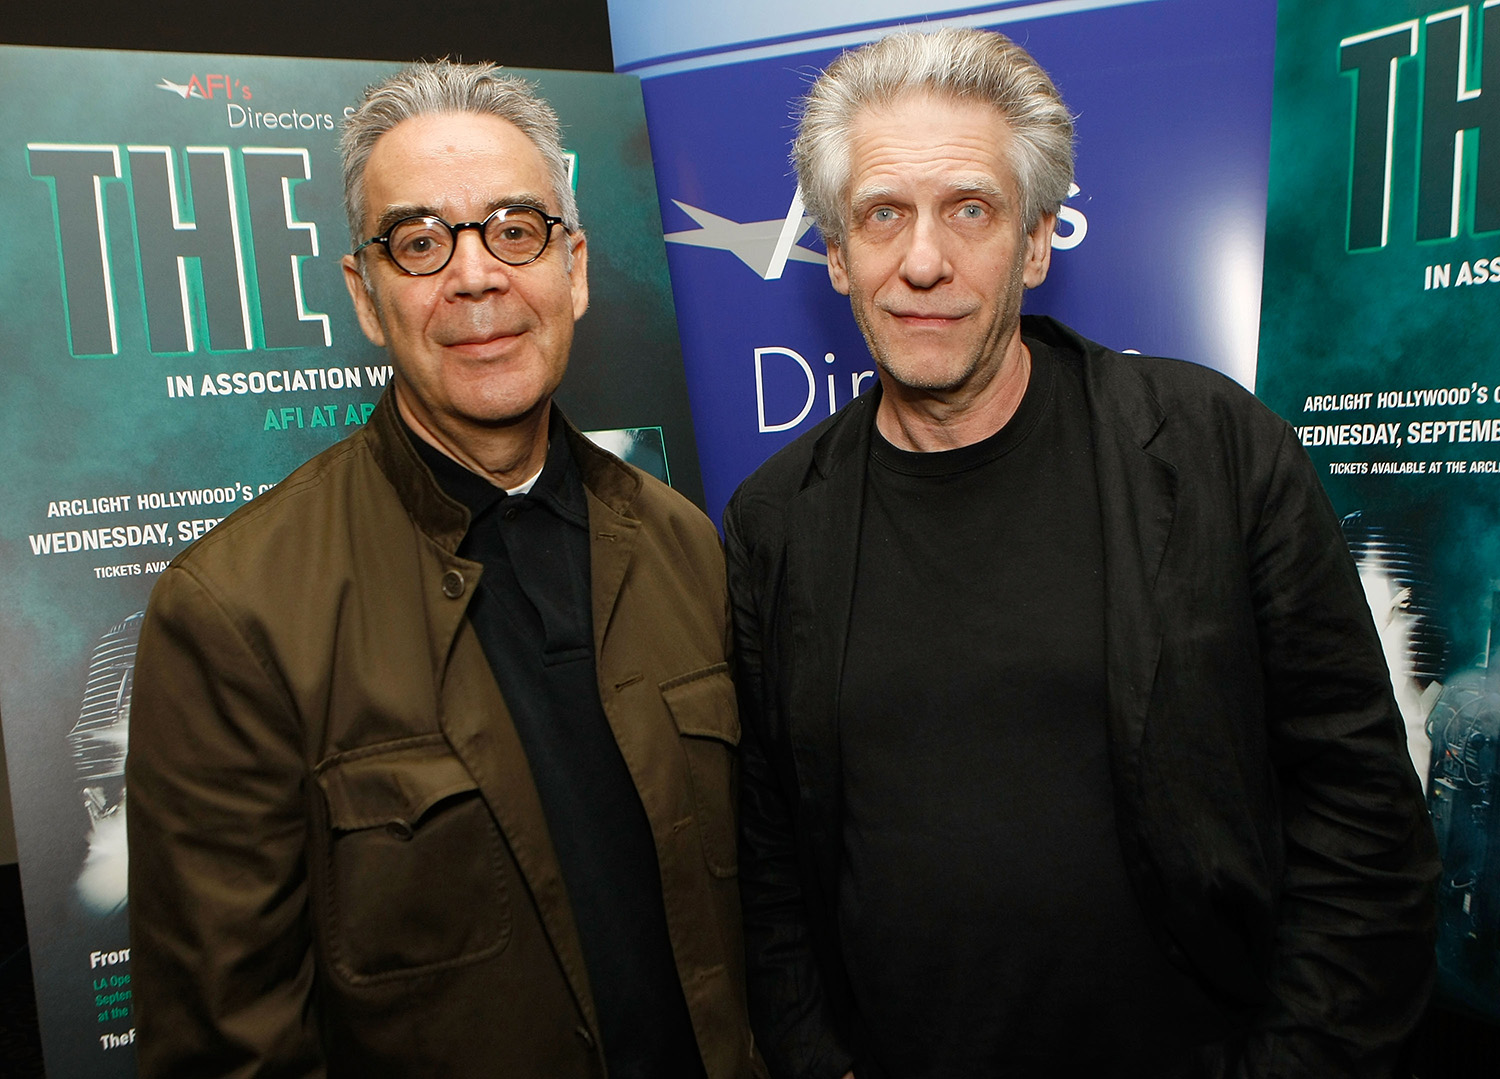 "LOS ANGELES, CA - SEPTEMBER 03: Composer Howard Shore (L) and director David Cronenberg attend AFI Directors Screening Of ""The Fly"" With David Cronenberg on September 3, 2008 in Los Angeles, California. (Photo by Michael Buckner/Getty Images)"